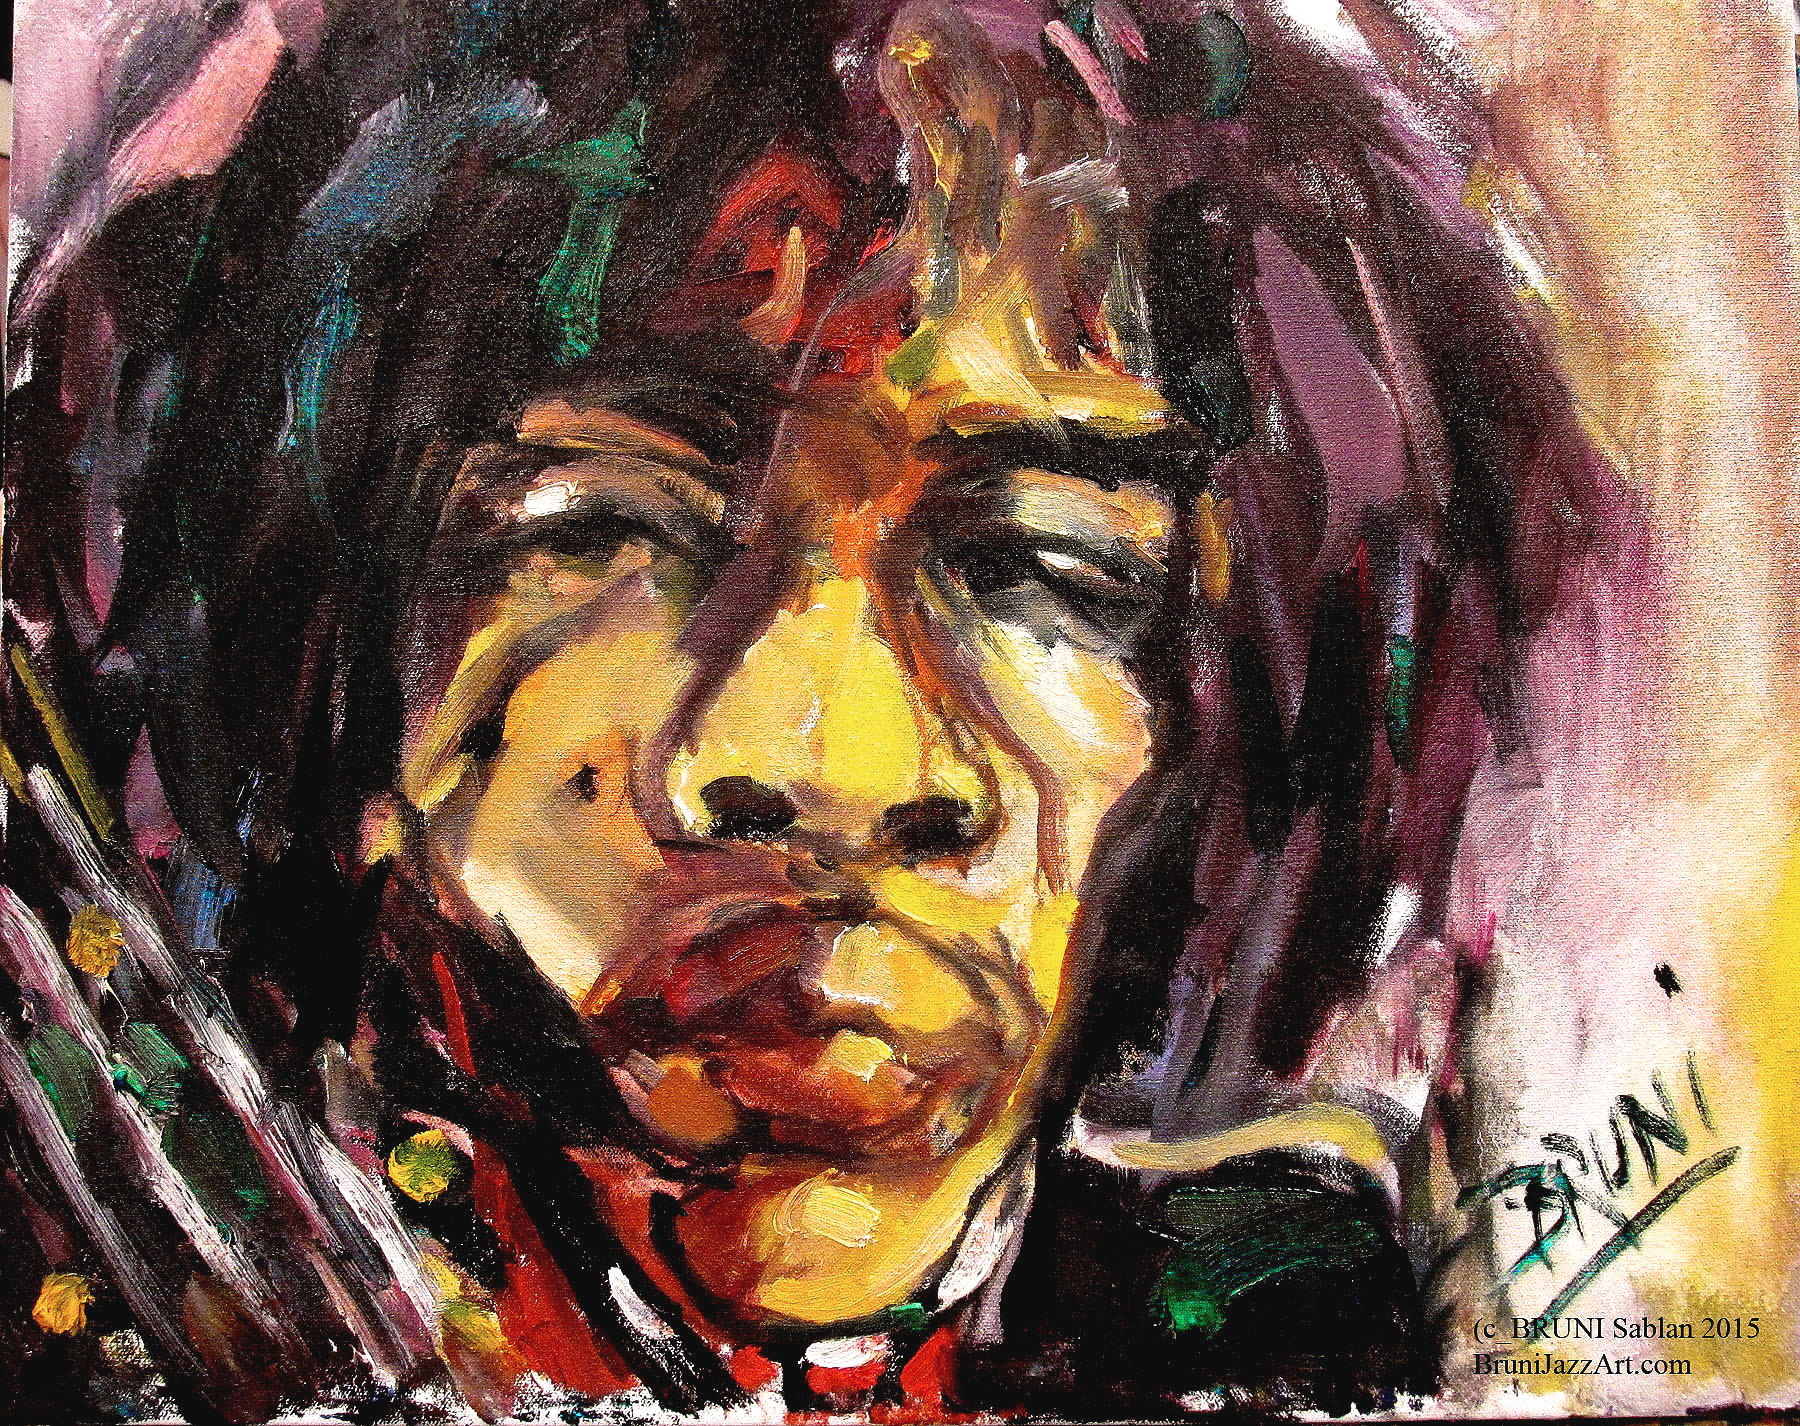 Jimi Hendrix by BRUNI